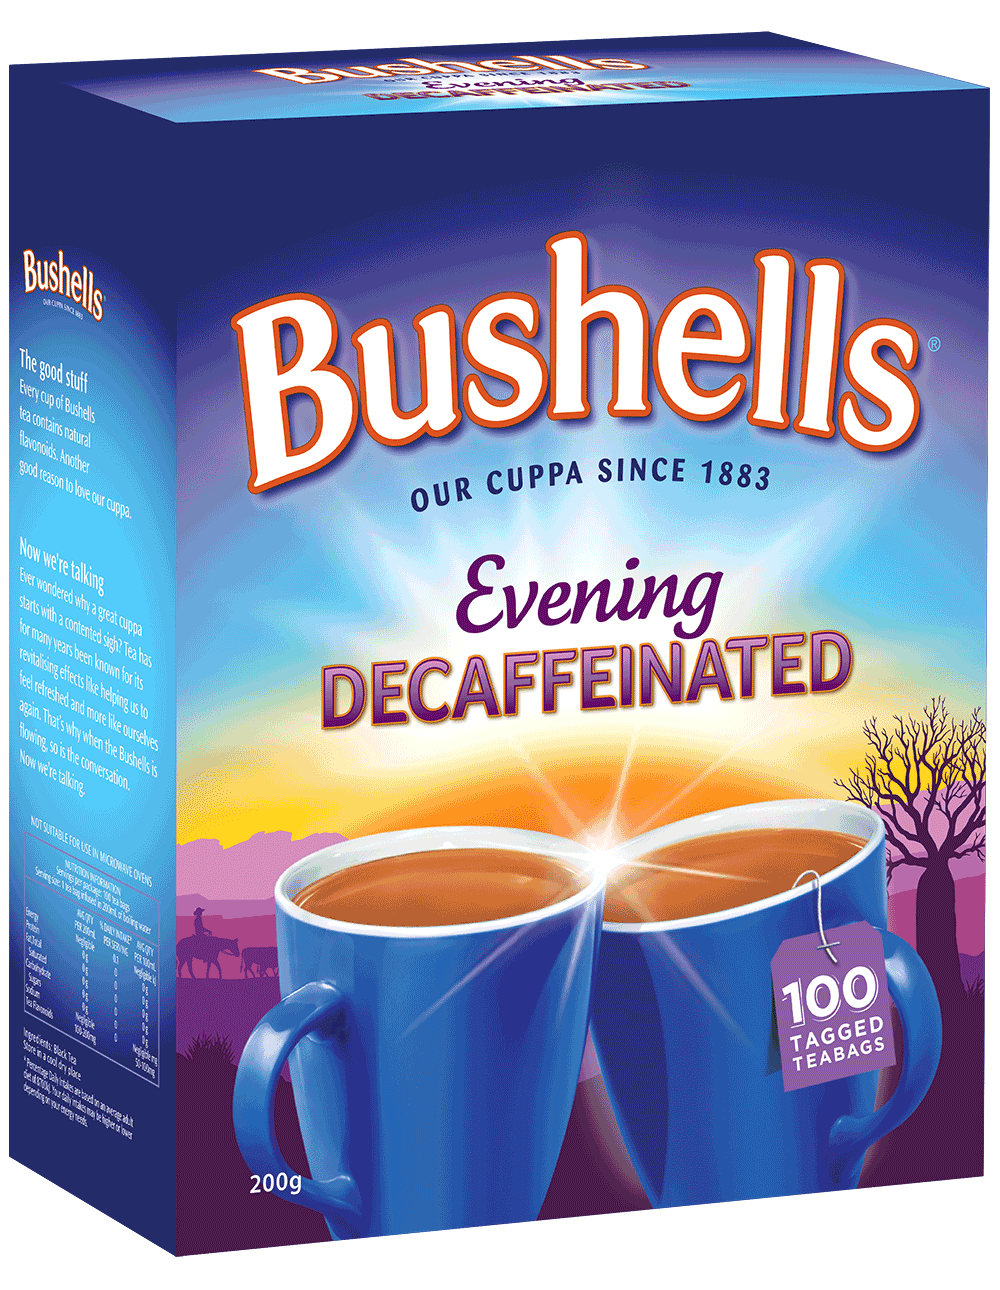 Bushells Evening Decaffeinated